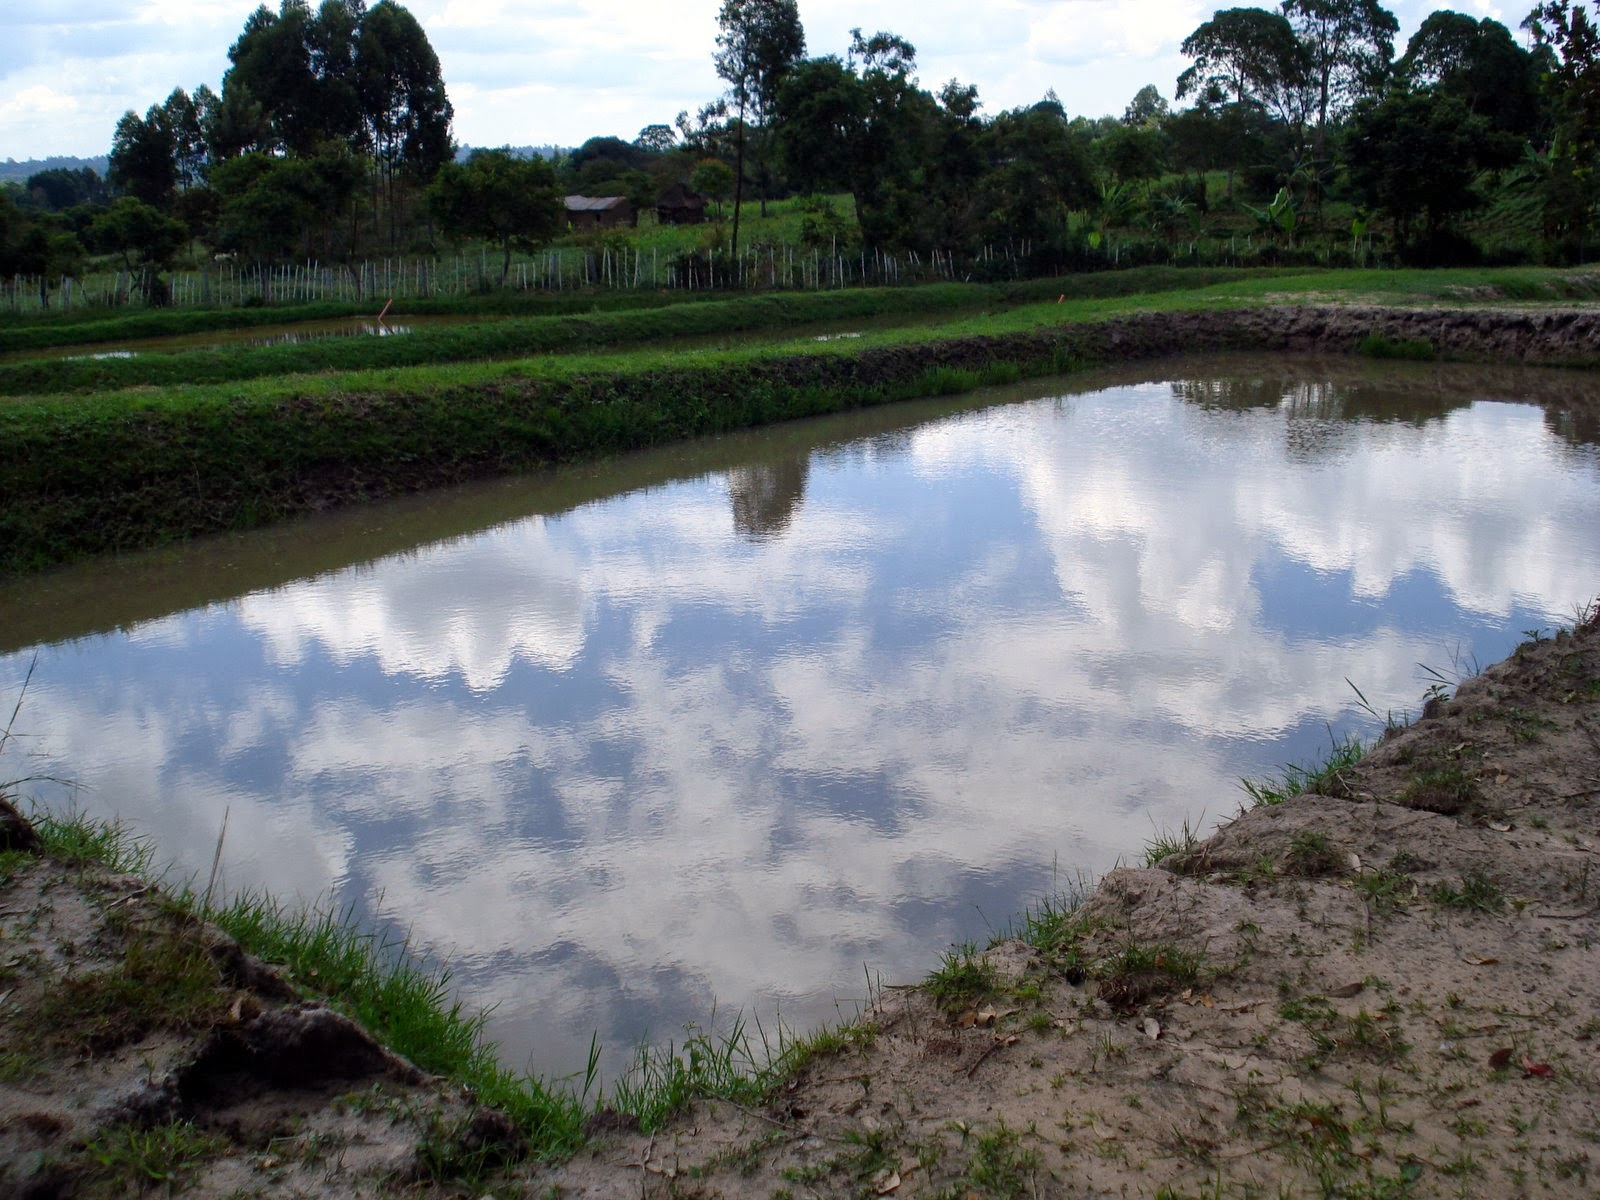 Jon and marianne hunter in kenya tilapia fish farm ponds for Farm pond fish